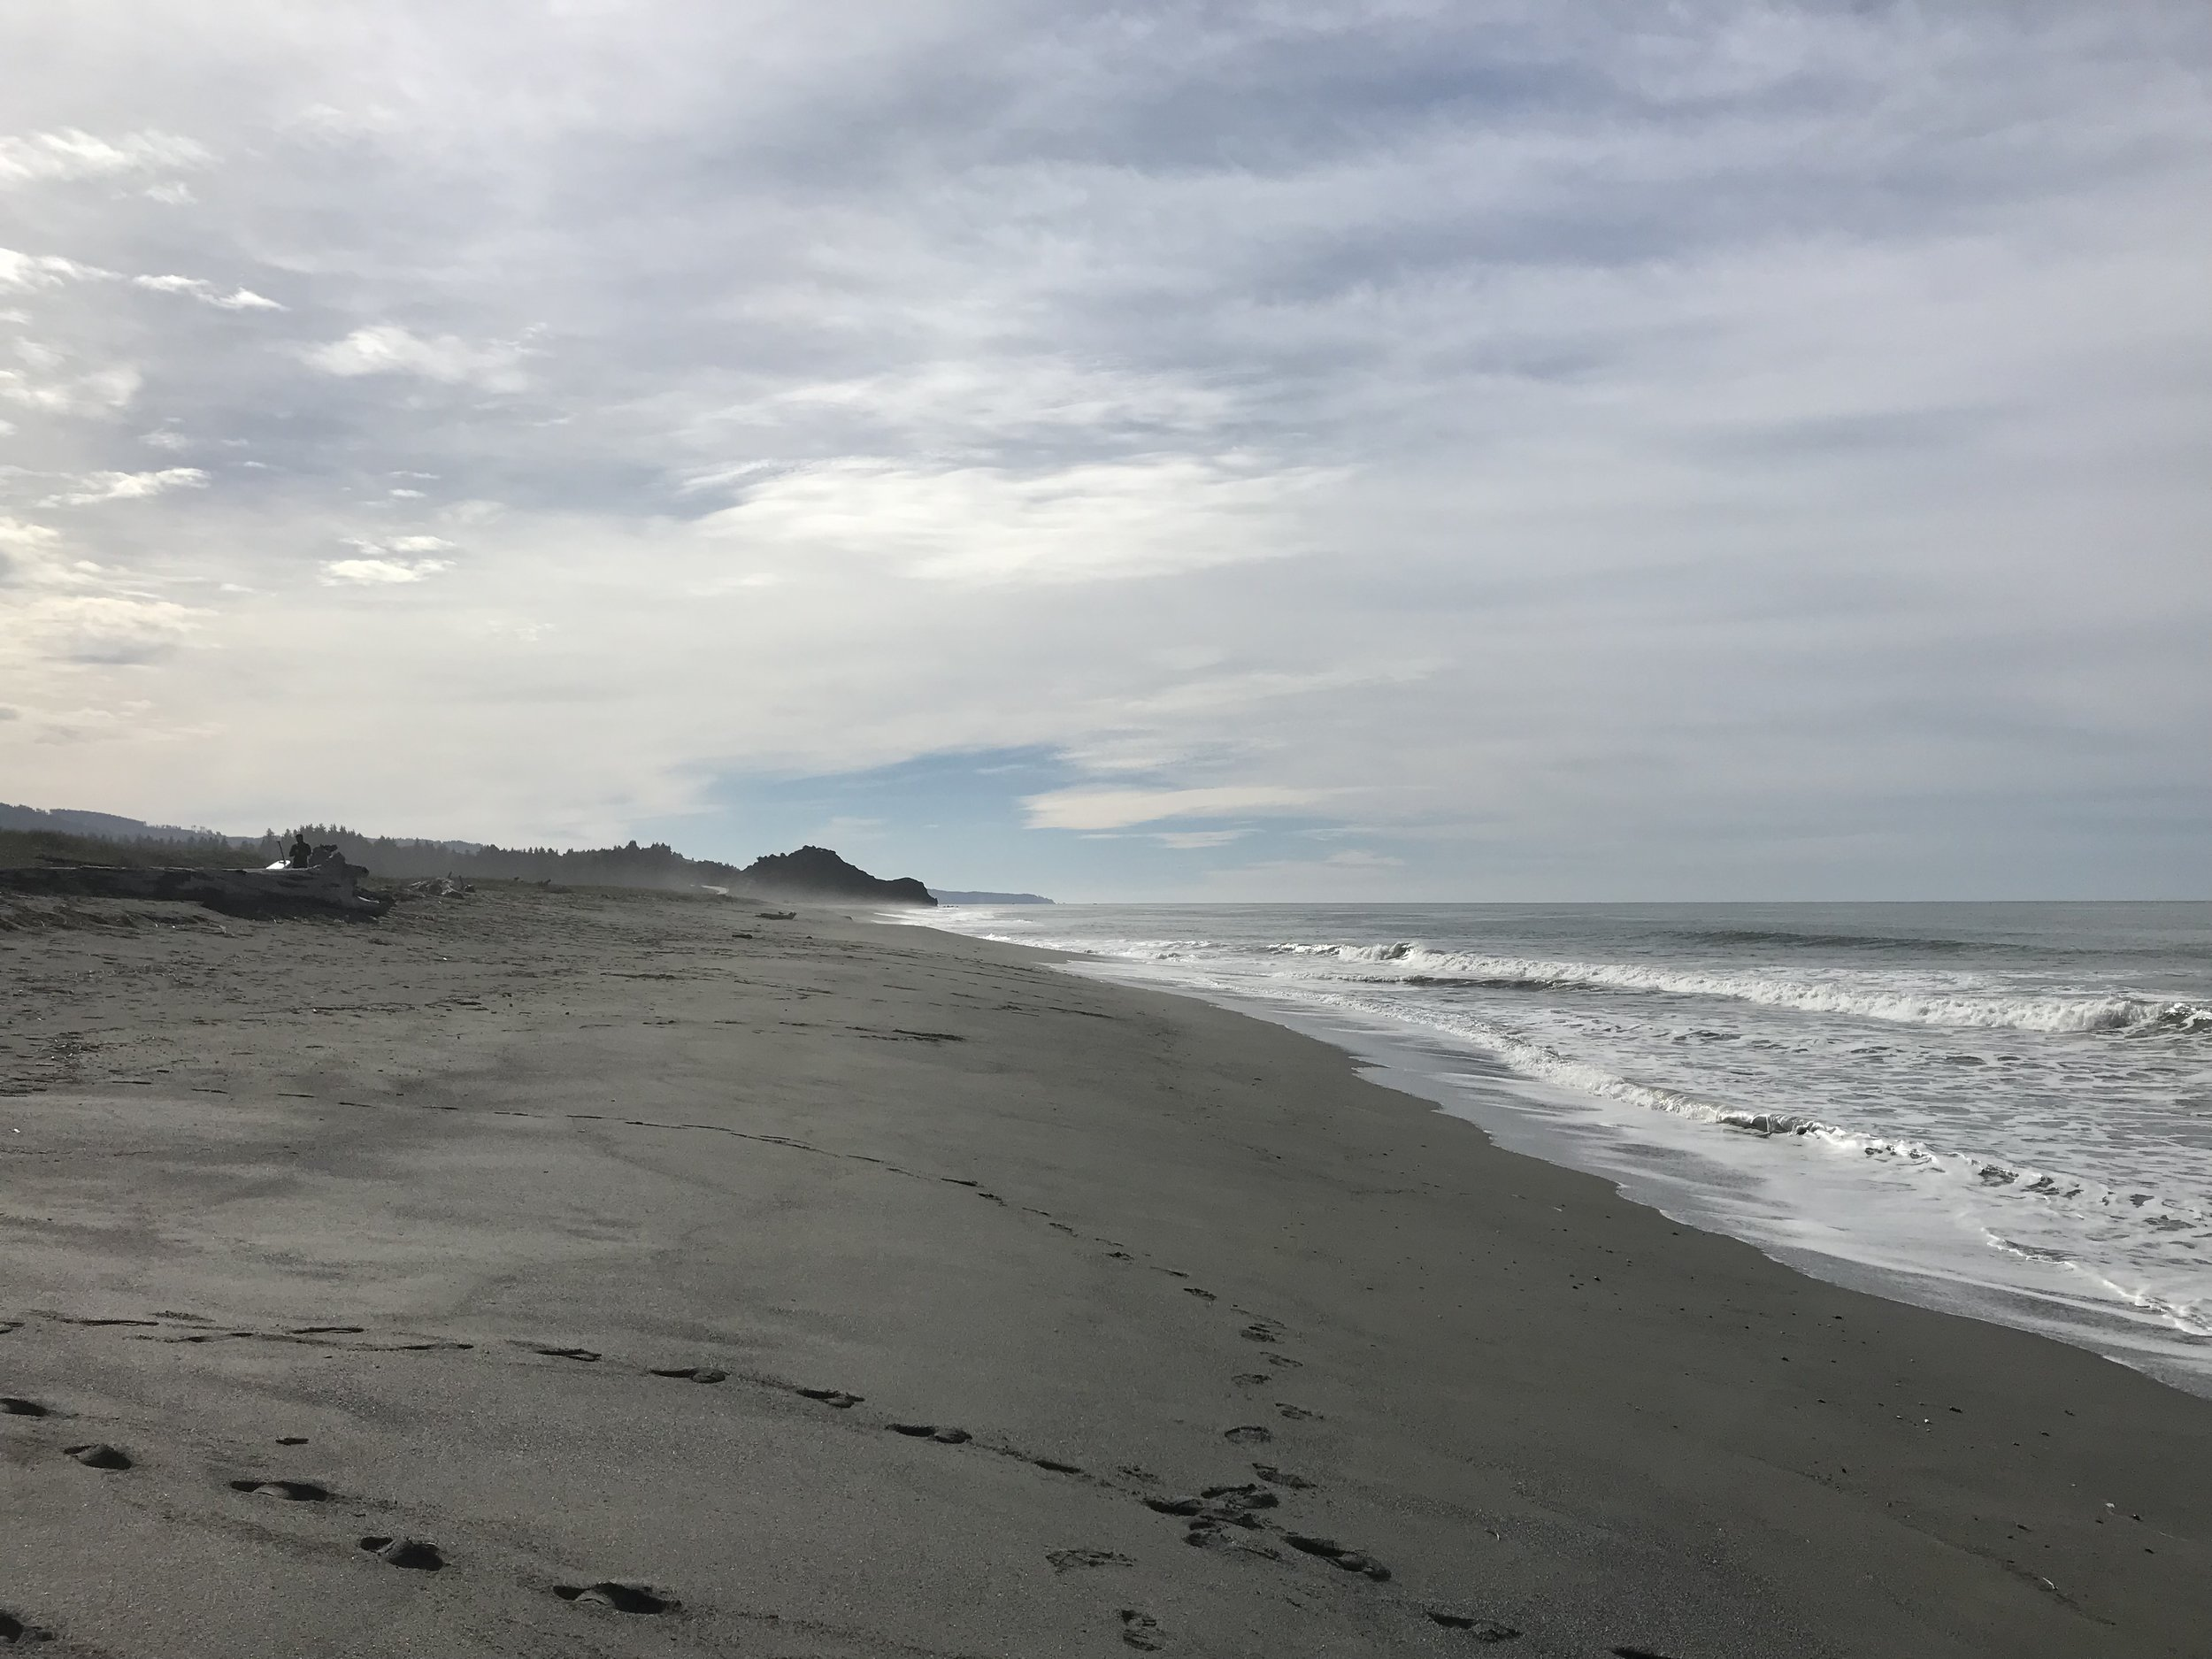 Hike Three: On the way into Redwood National Park you are going to run into the Pacific Ocean. Beach hiking is always encouraged at Hashtag59!